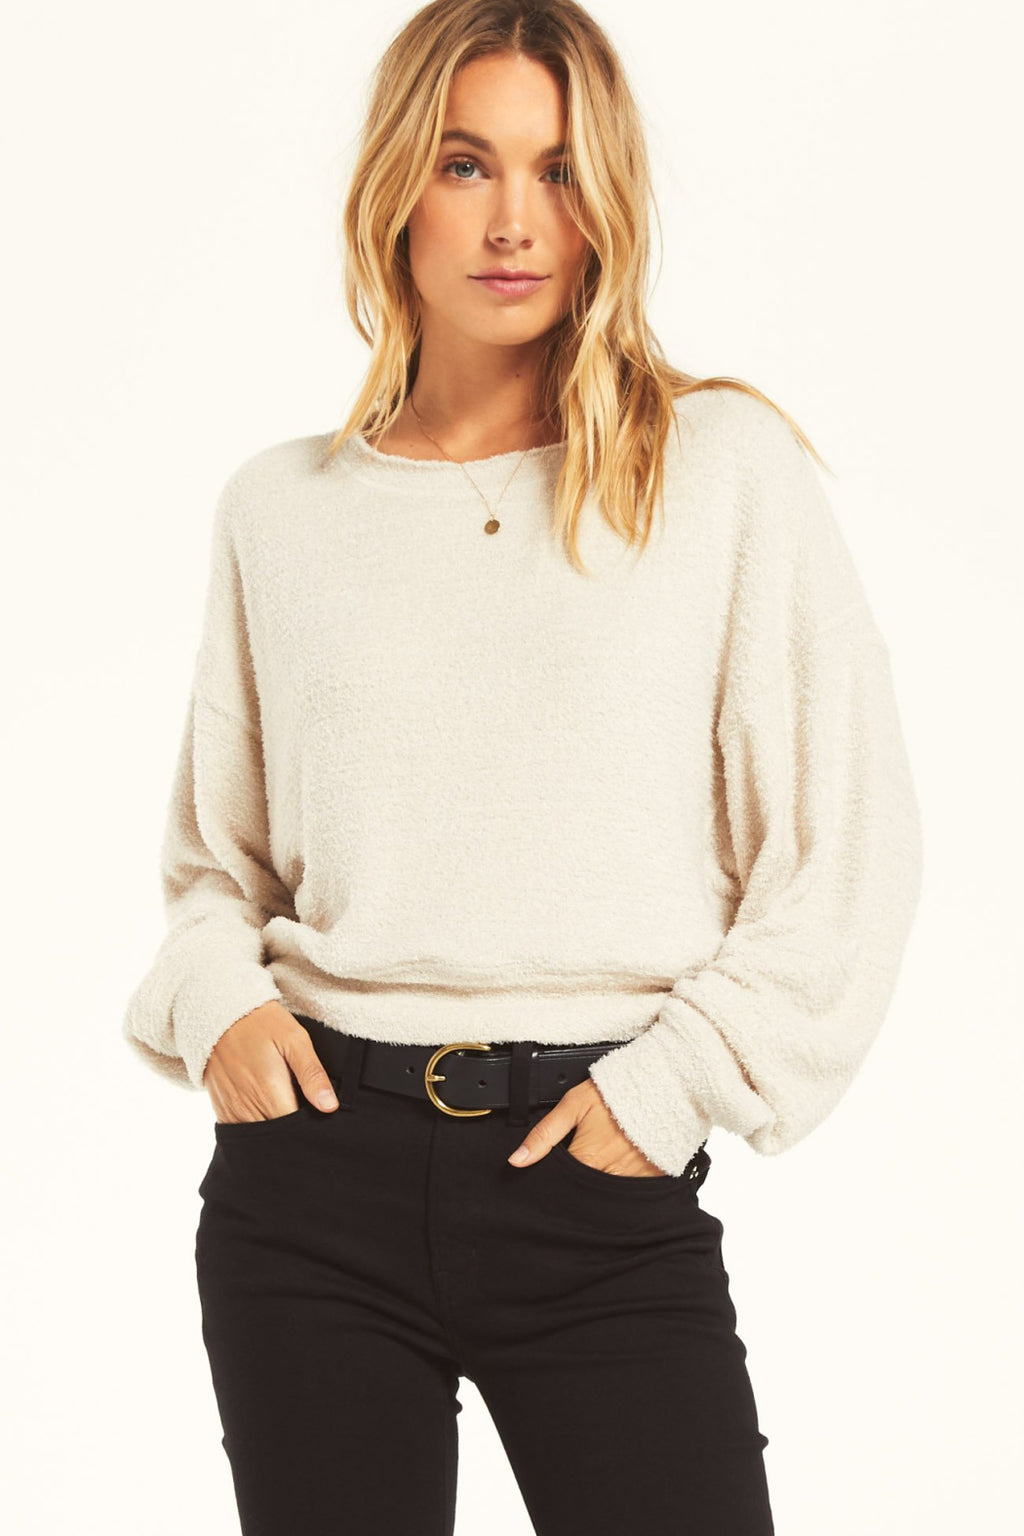 Z Supply Storm Skimmer Sweatshirt